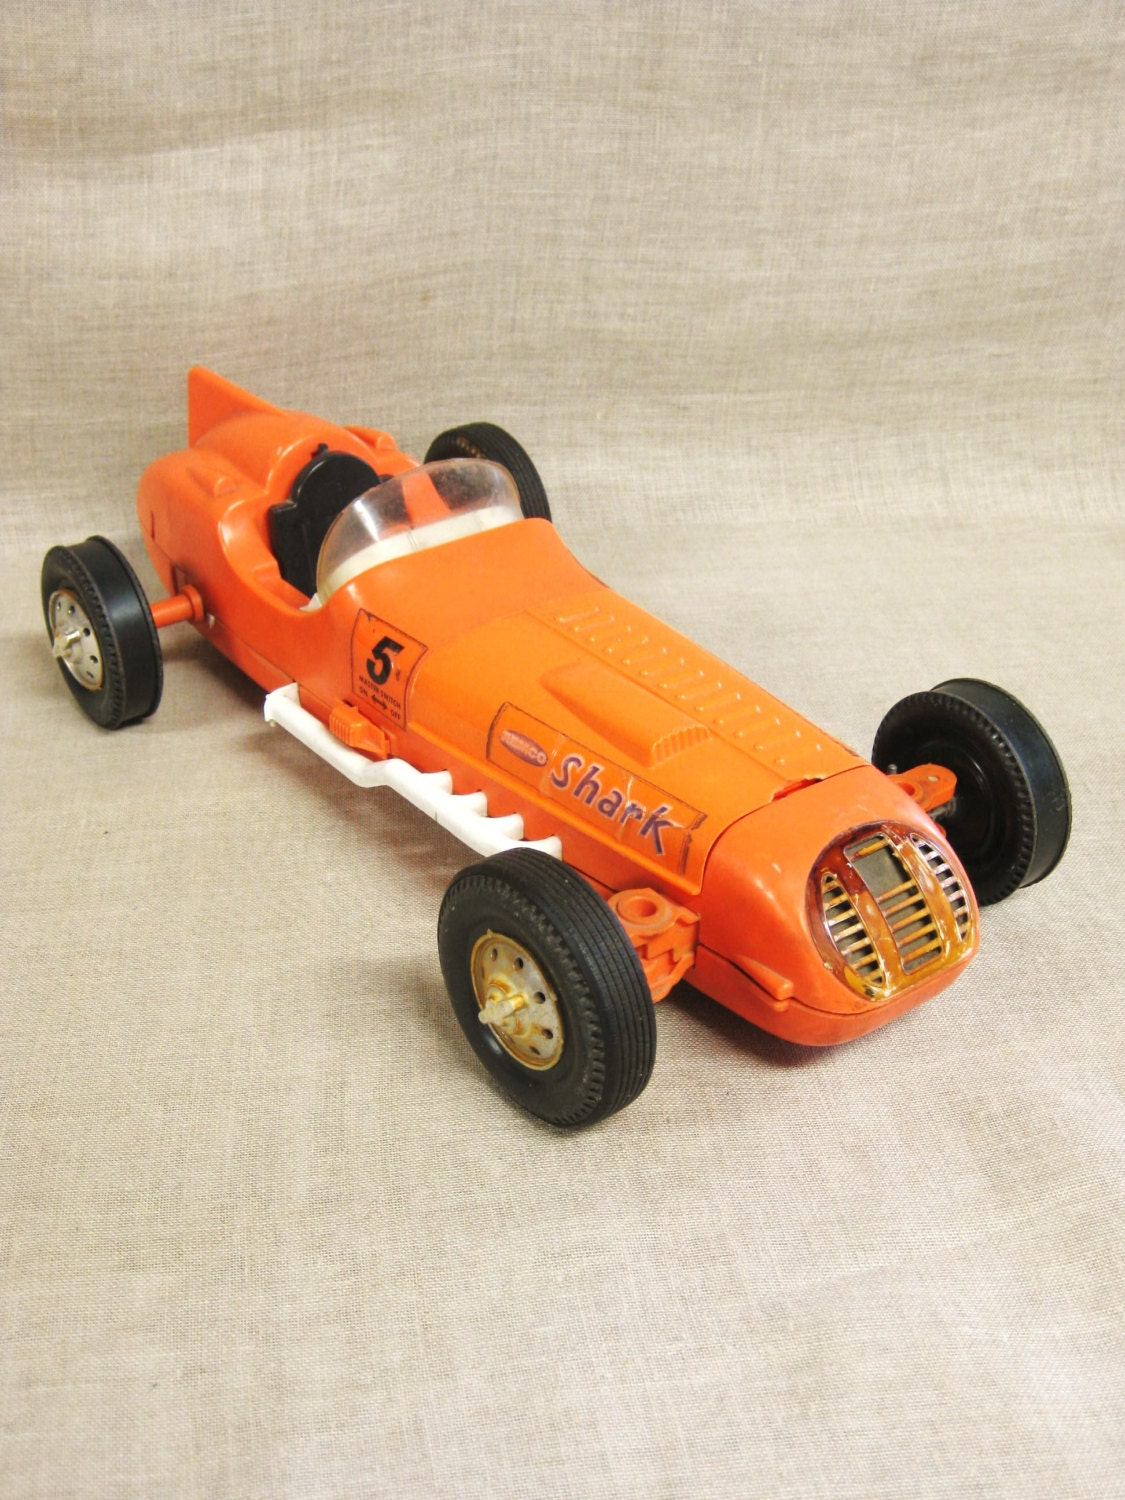 Toy Race Cars : Remco shark toy car cars transportation orange race